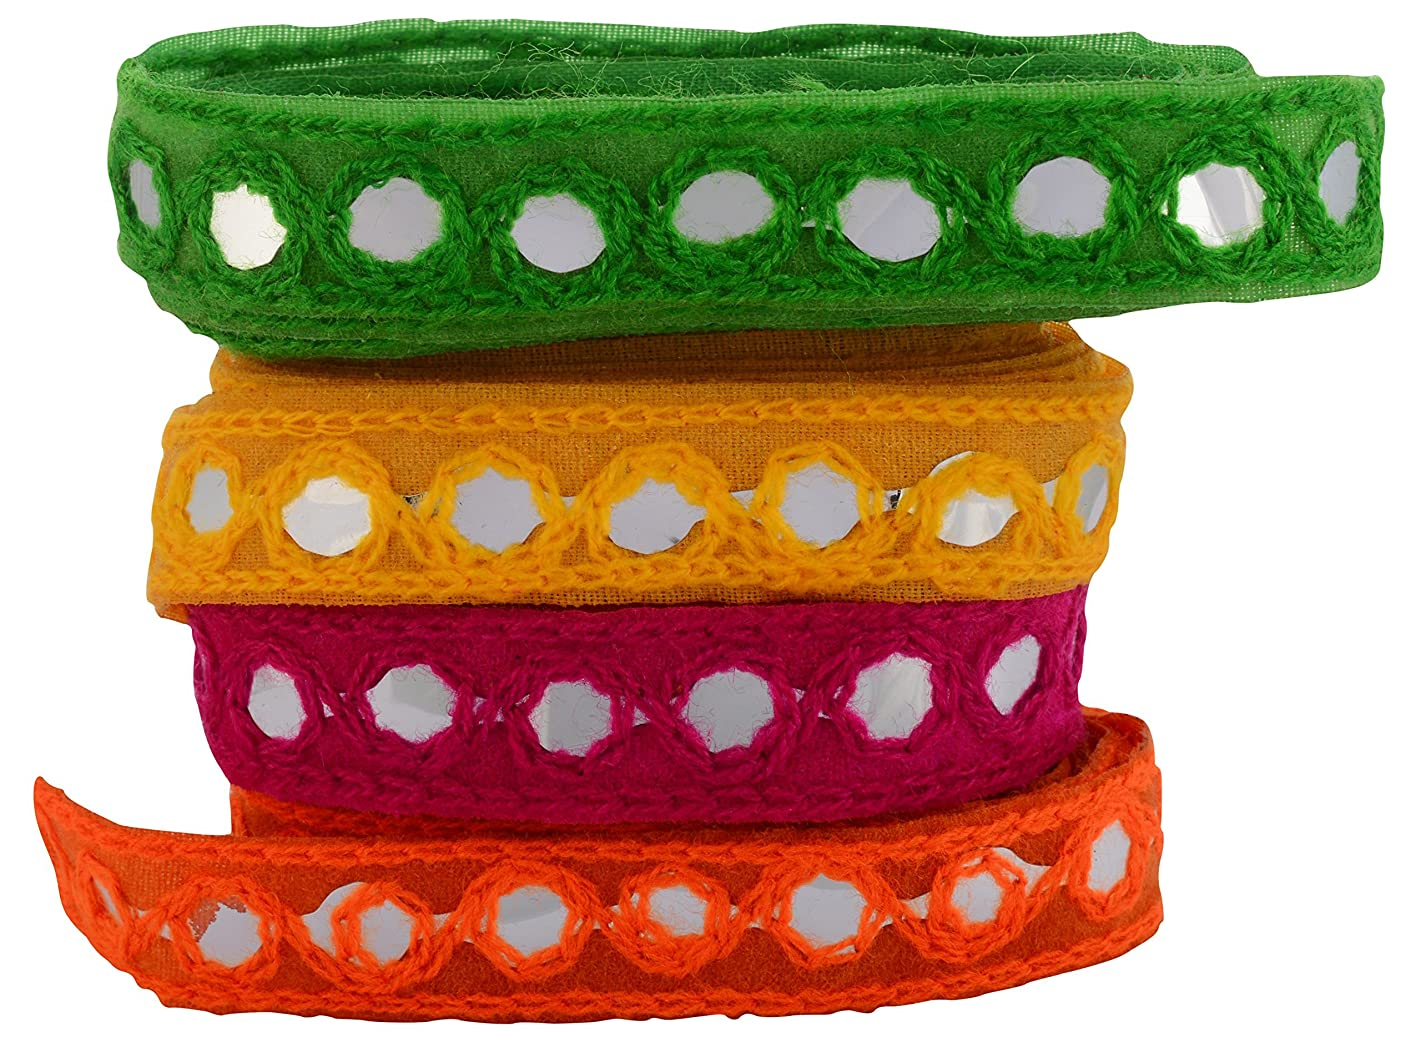 GOELX Fashion Mirror Laces in Different Colors for Decorations-Apparels-Borders- Crafts, Any Many More. Pack of 4 Yards